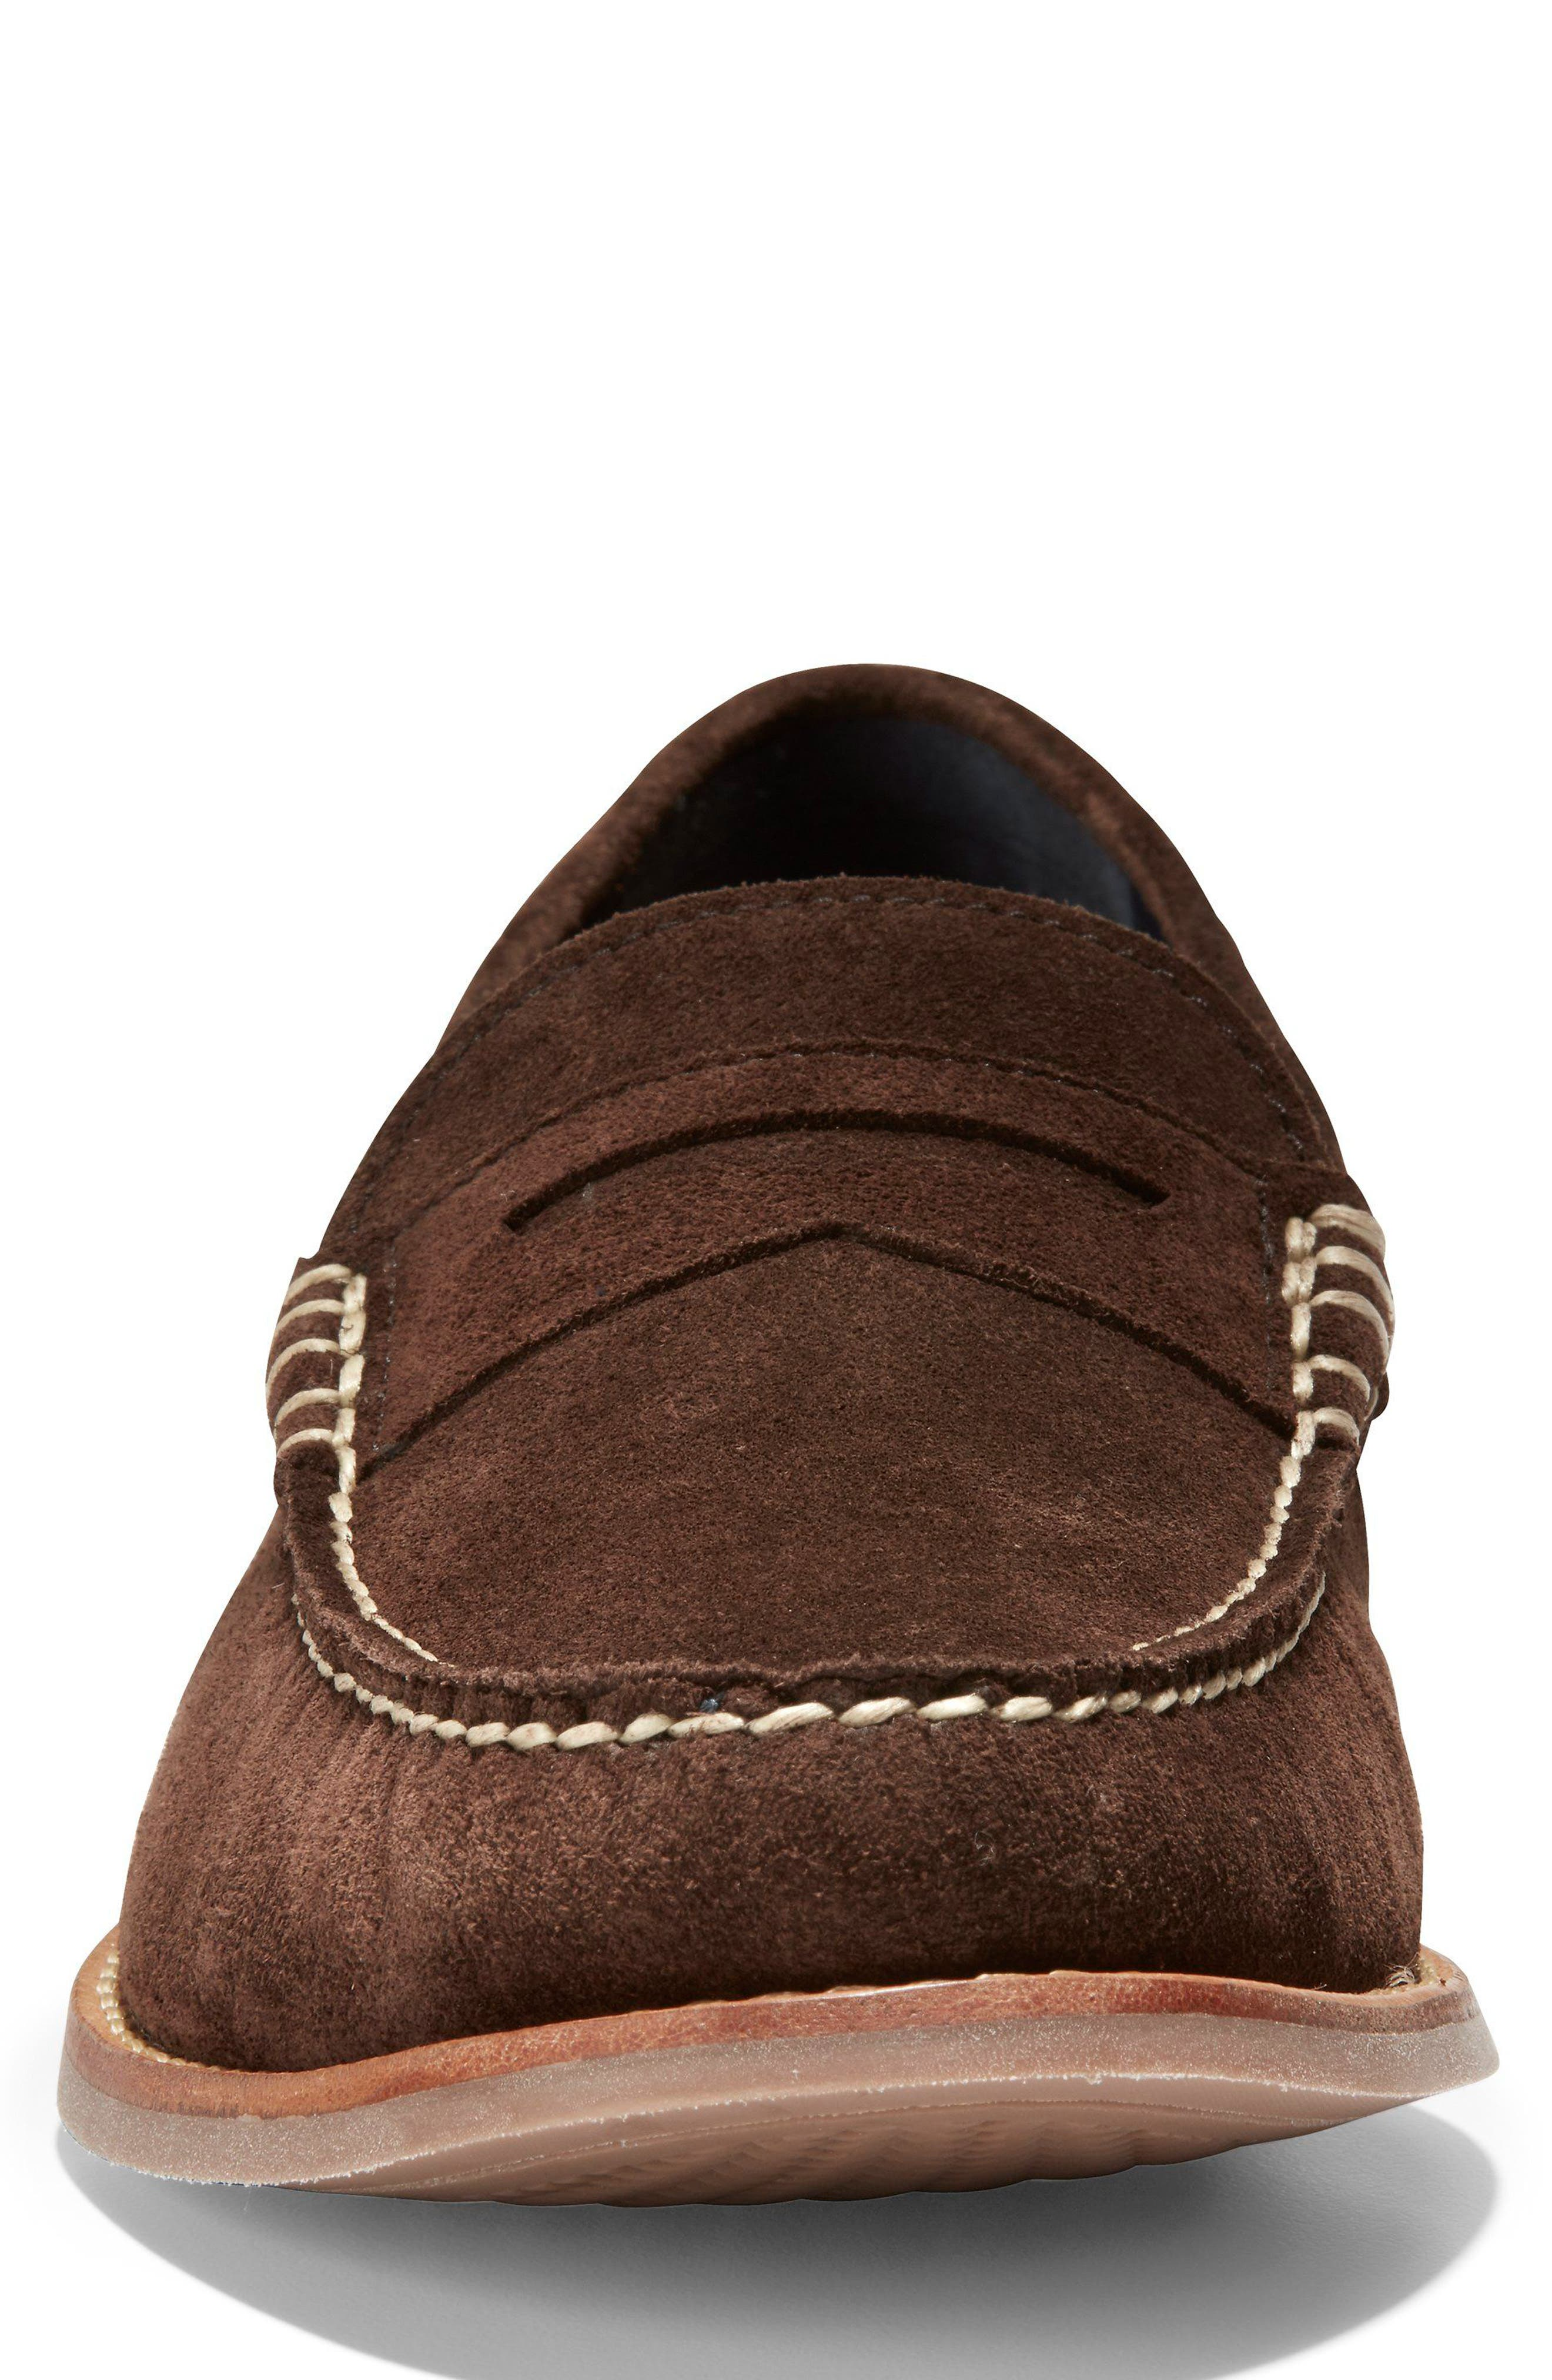 'Pinch Grand' Penny Loafer,                             Alternate thumbnail 4, color,                             Brown Suede